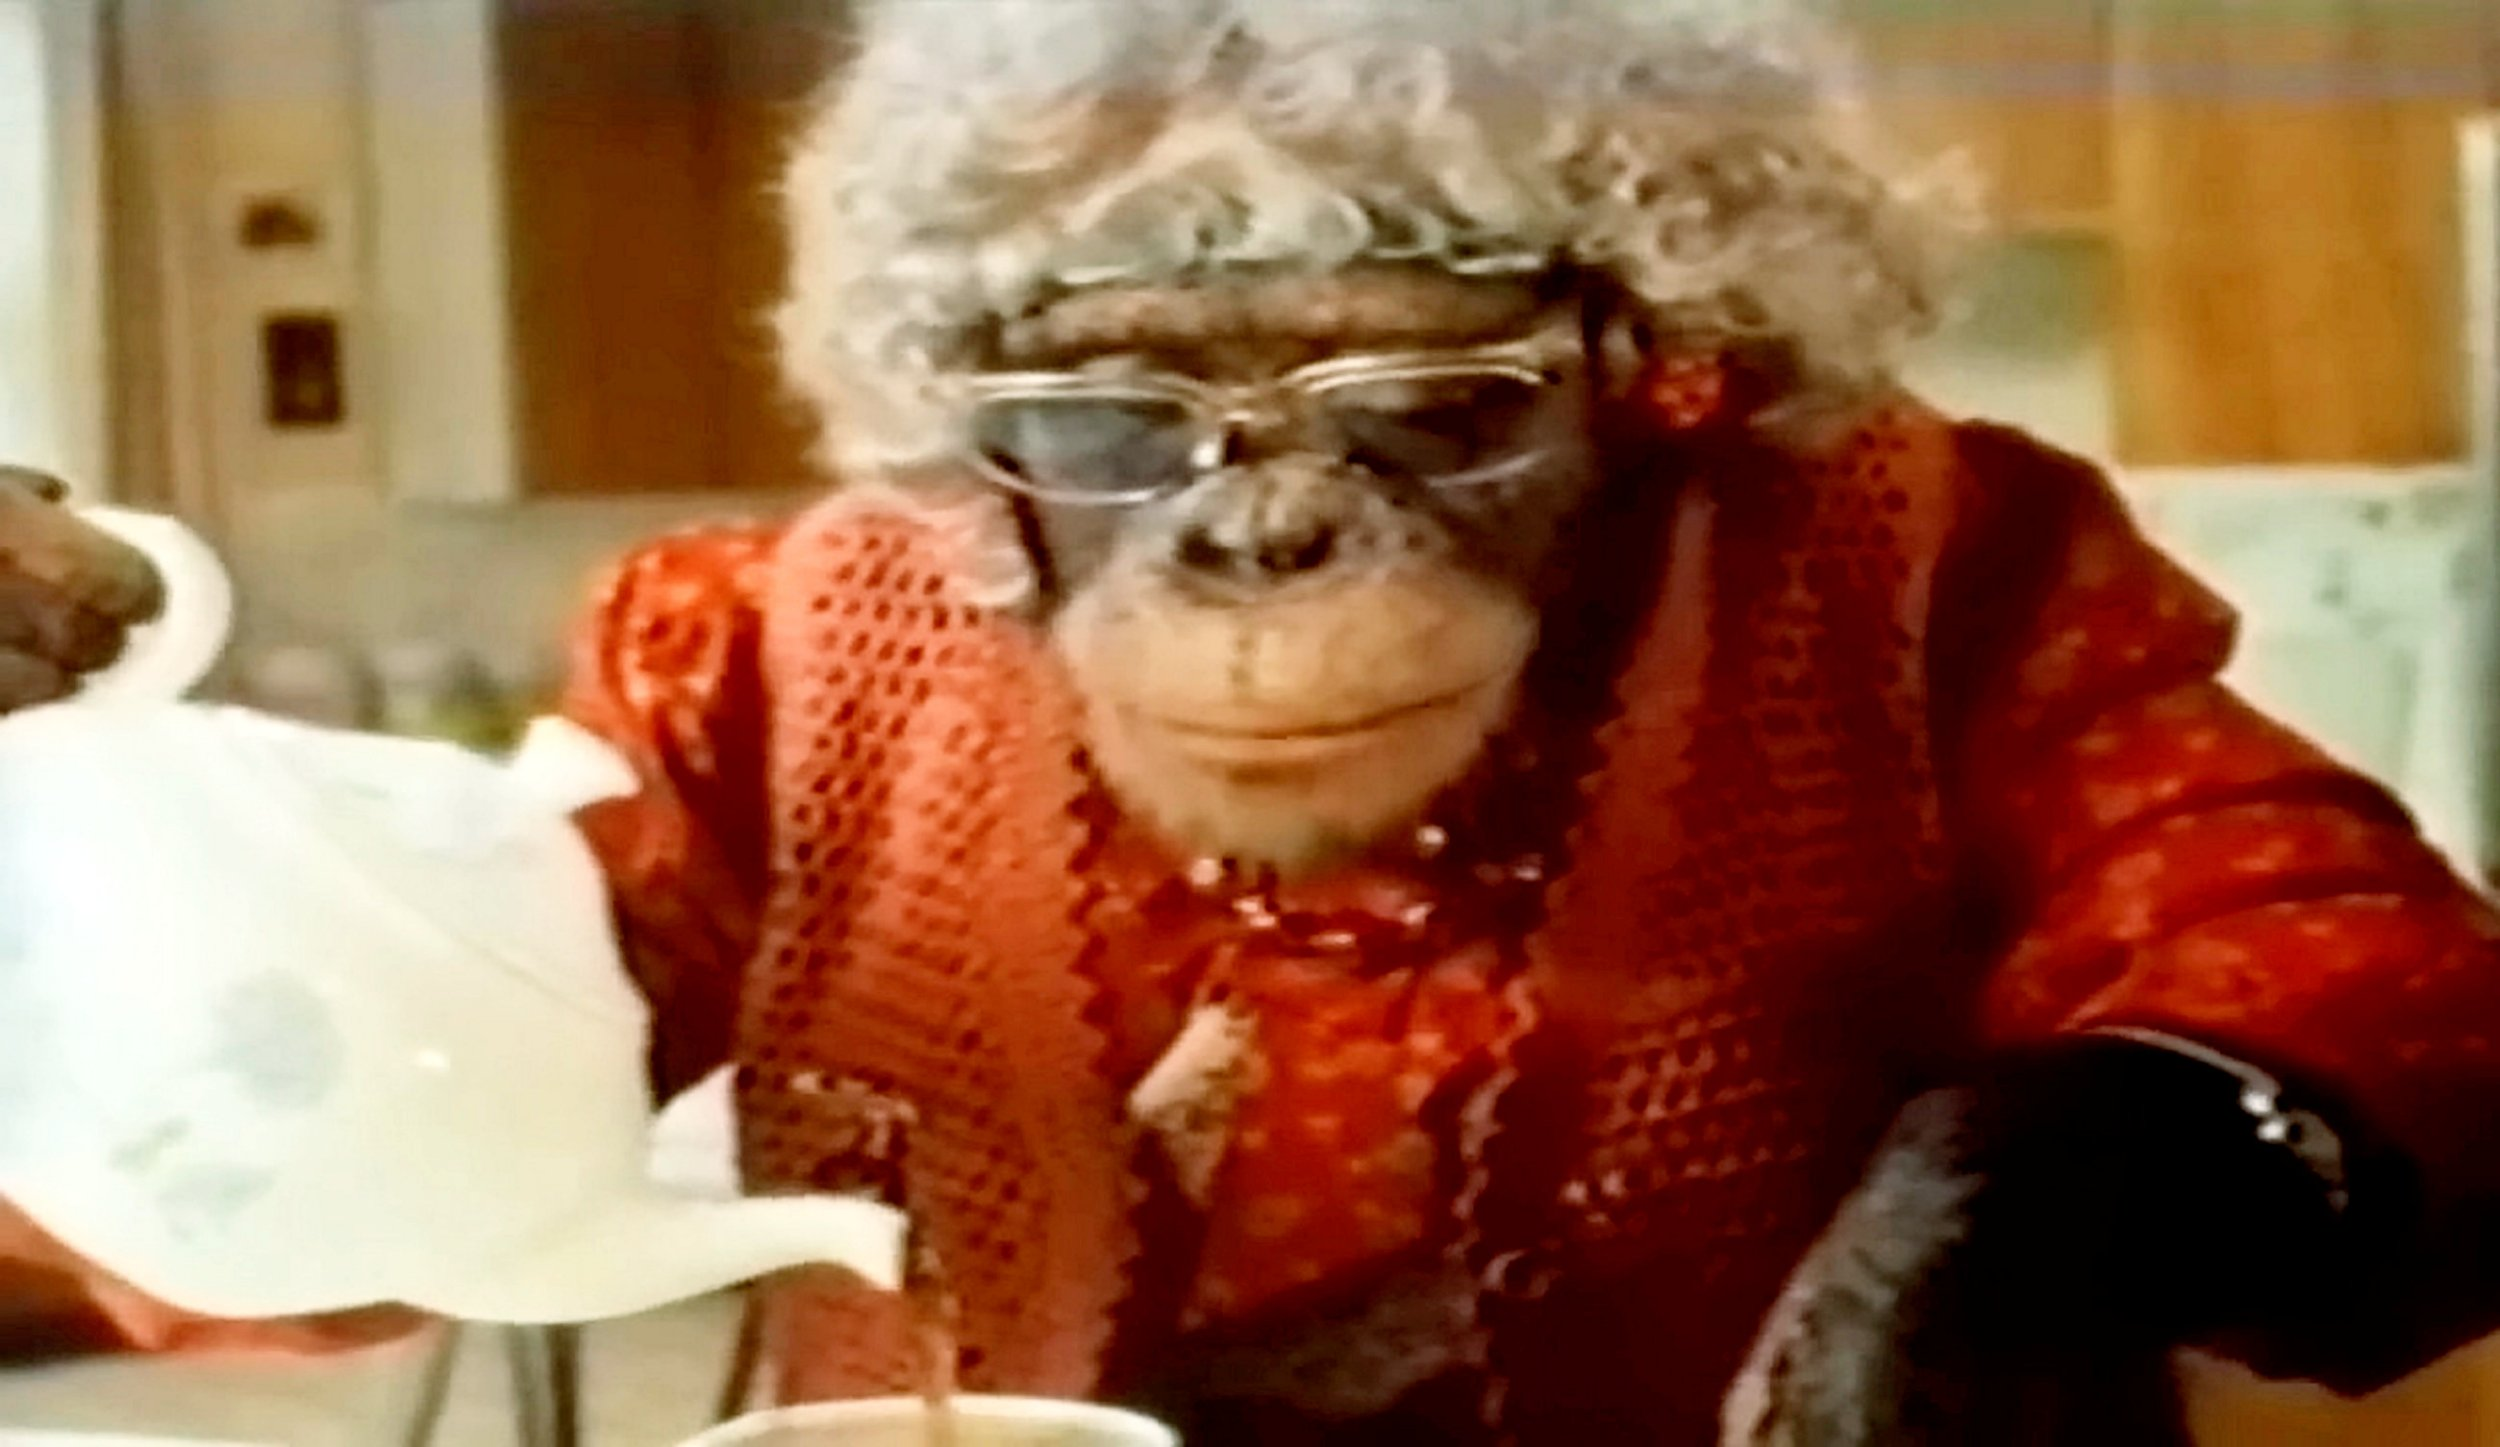 "Choppers performing as Ada in a PG Tips advert in the 1980's. The last of the original PG Tips chimpanzees has died at Twycross Zoo. See NTI story NTICHIMP. Choppers, who was 48, played Ada in the memorable adverts which were broadcast on TV from the 1950s. The zoo said the ""much-loved"" ape had signs of heart and liver failure and the decision to put her to sleep was made on Wednesday. In 2014, the zoo told the BBC the use of apes on television had been wrong and Choppers was ""mixed up"" as a result. Chimps like Choppers were trained by Twycross, in Leicestershire. They were dressed up in clothes and lip-synced with the voices of actors such as Peter Sellers and Bob Monkhouse. They also appeared in children's shows Tiswas and Blue Peter and their messy tea parties were a big hit with the public. After about 30 years, the zoo ended its agreement for its apes to be used in advertising but chimpanzees from abroad still appeared in tea adverts until 2003."